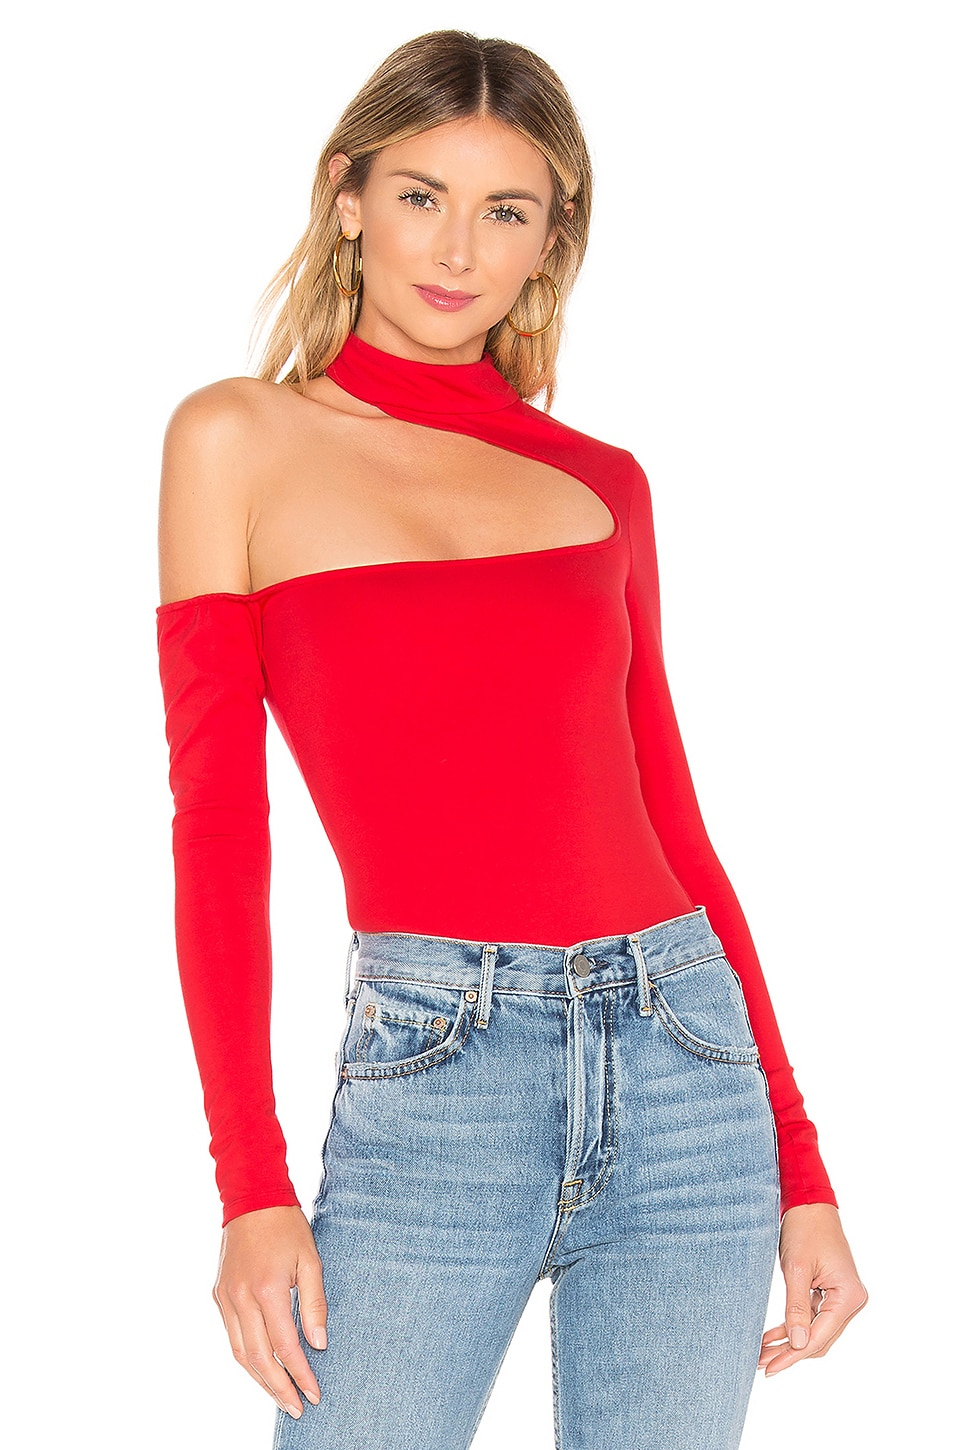 Midland Bodysuit in Red